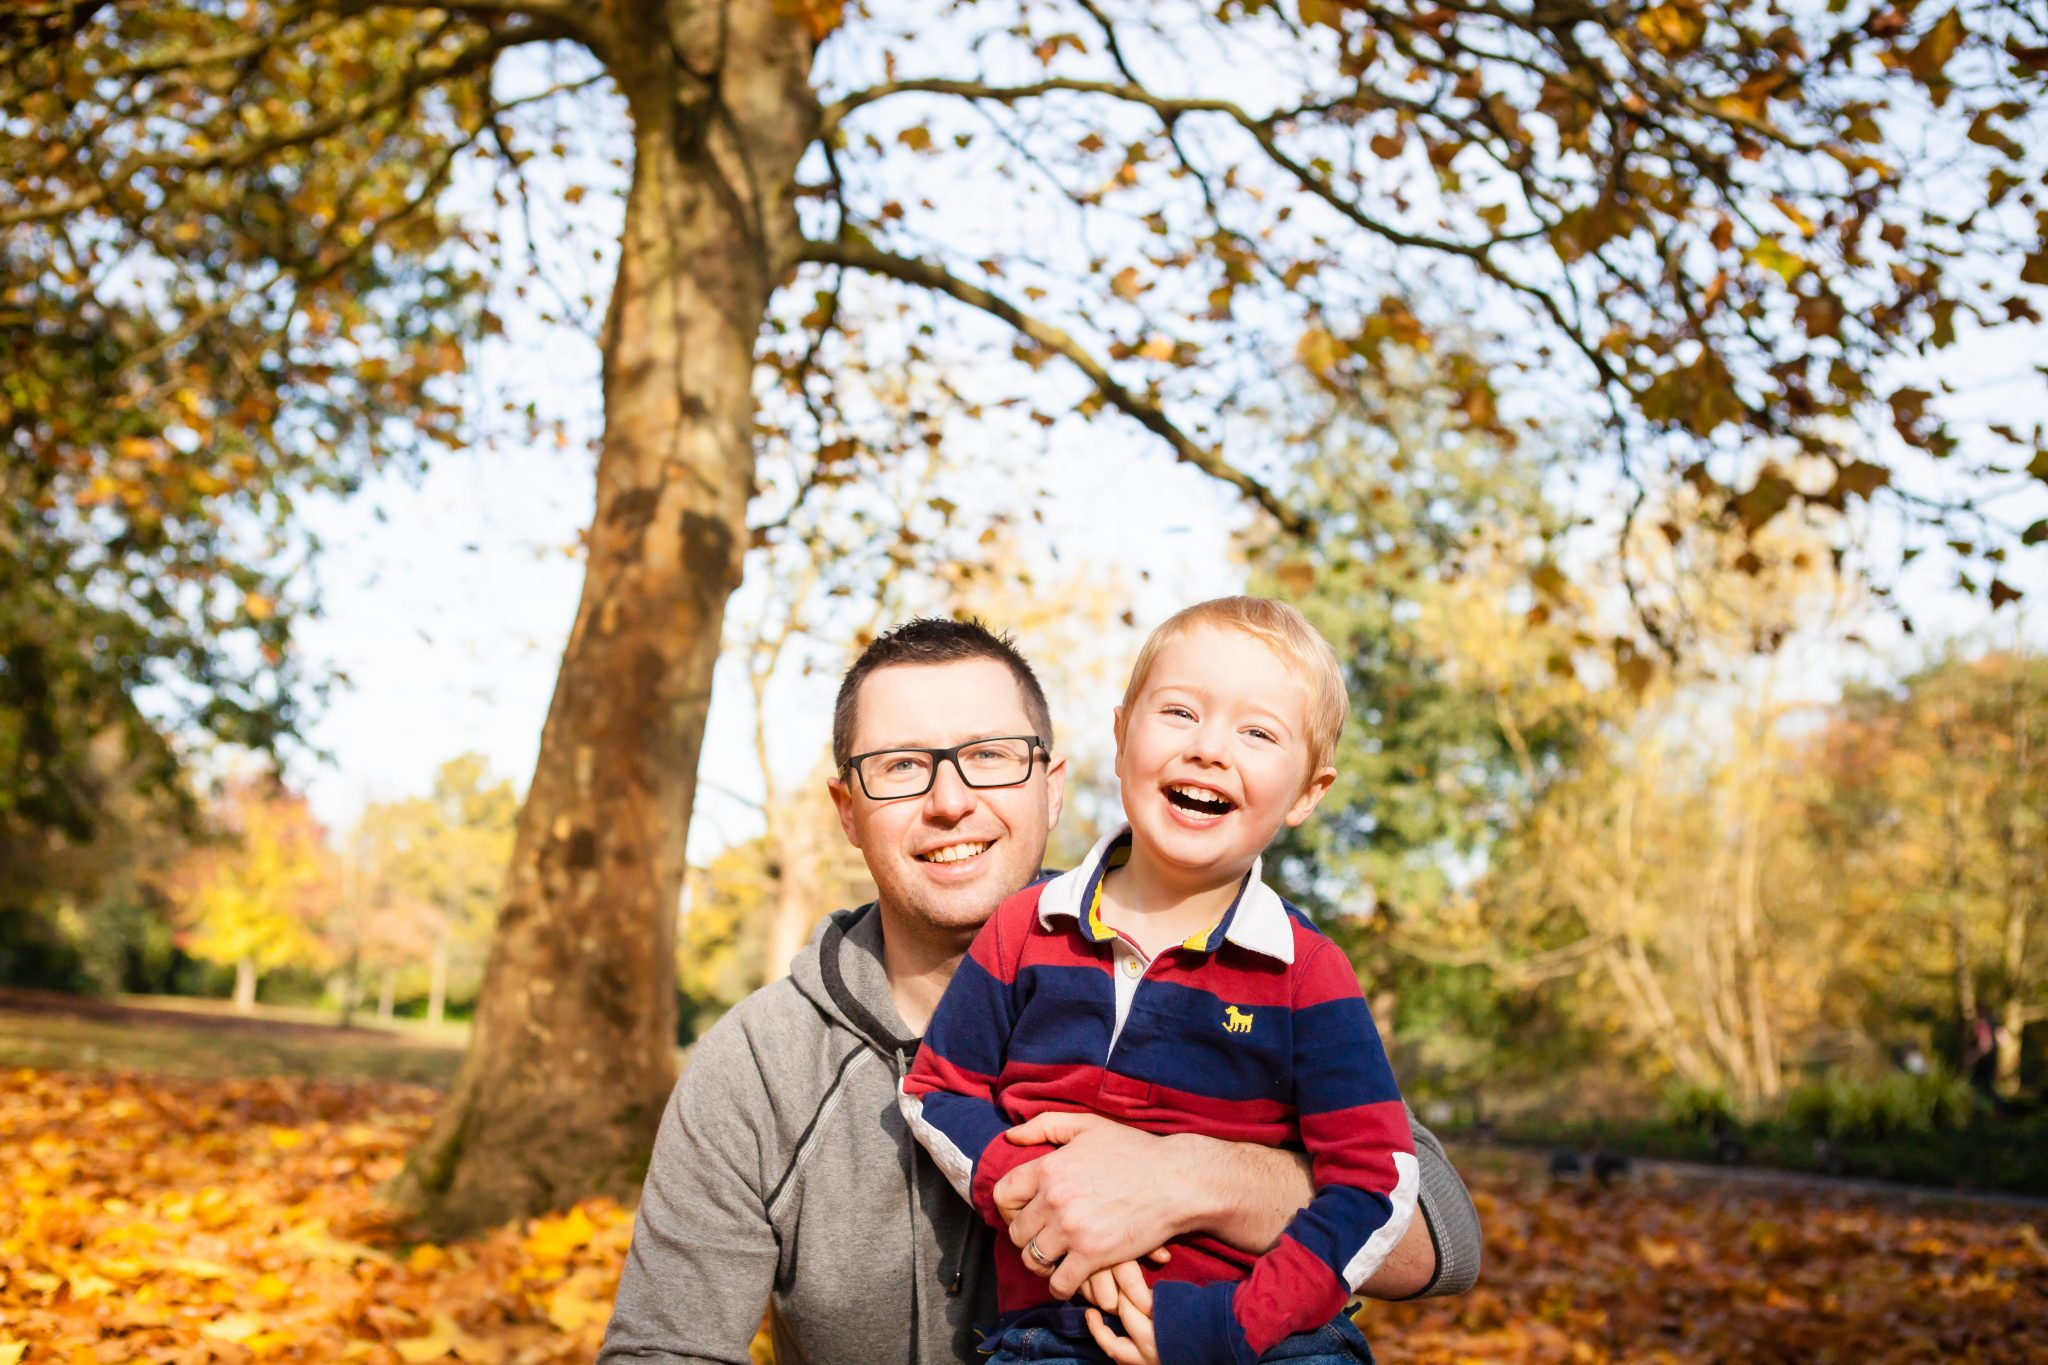 Autumn photography outside of dad and son laughing and cuddling, family fun and giggles in Beckenham